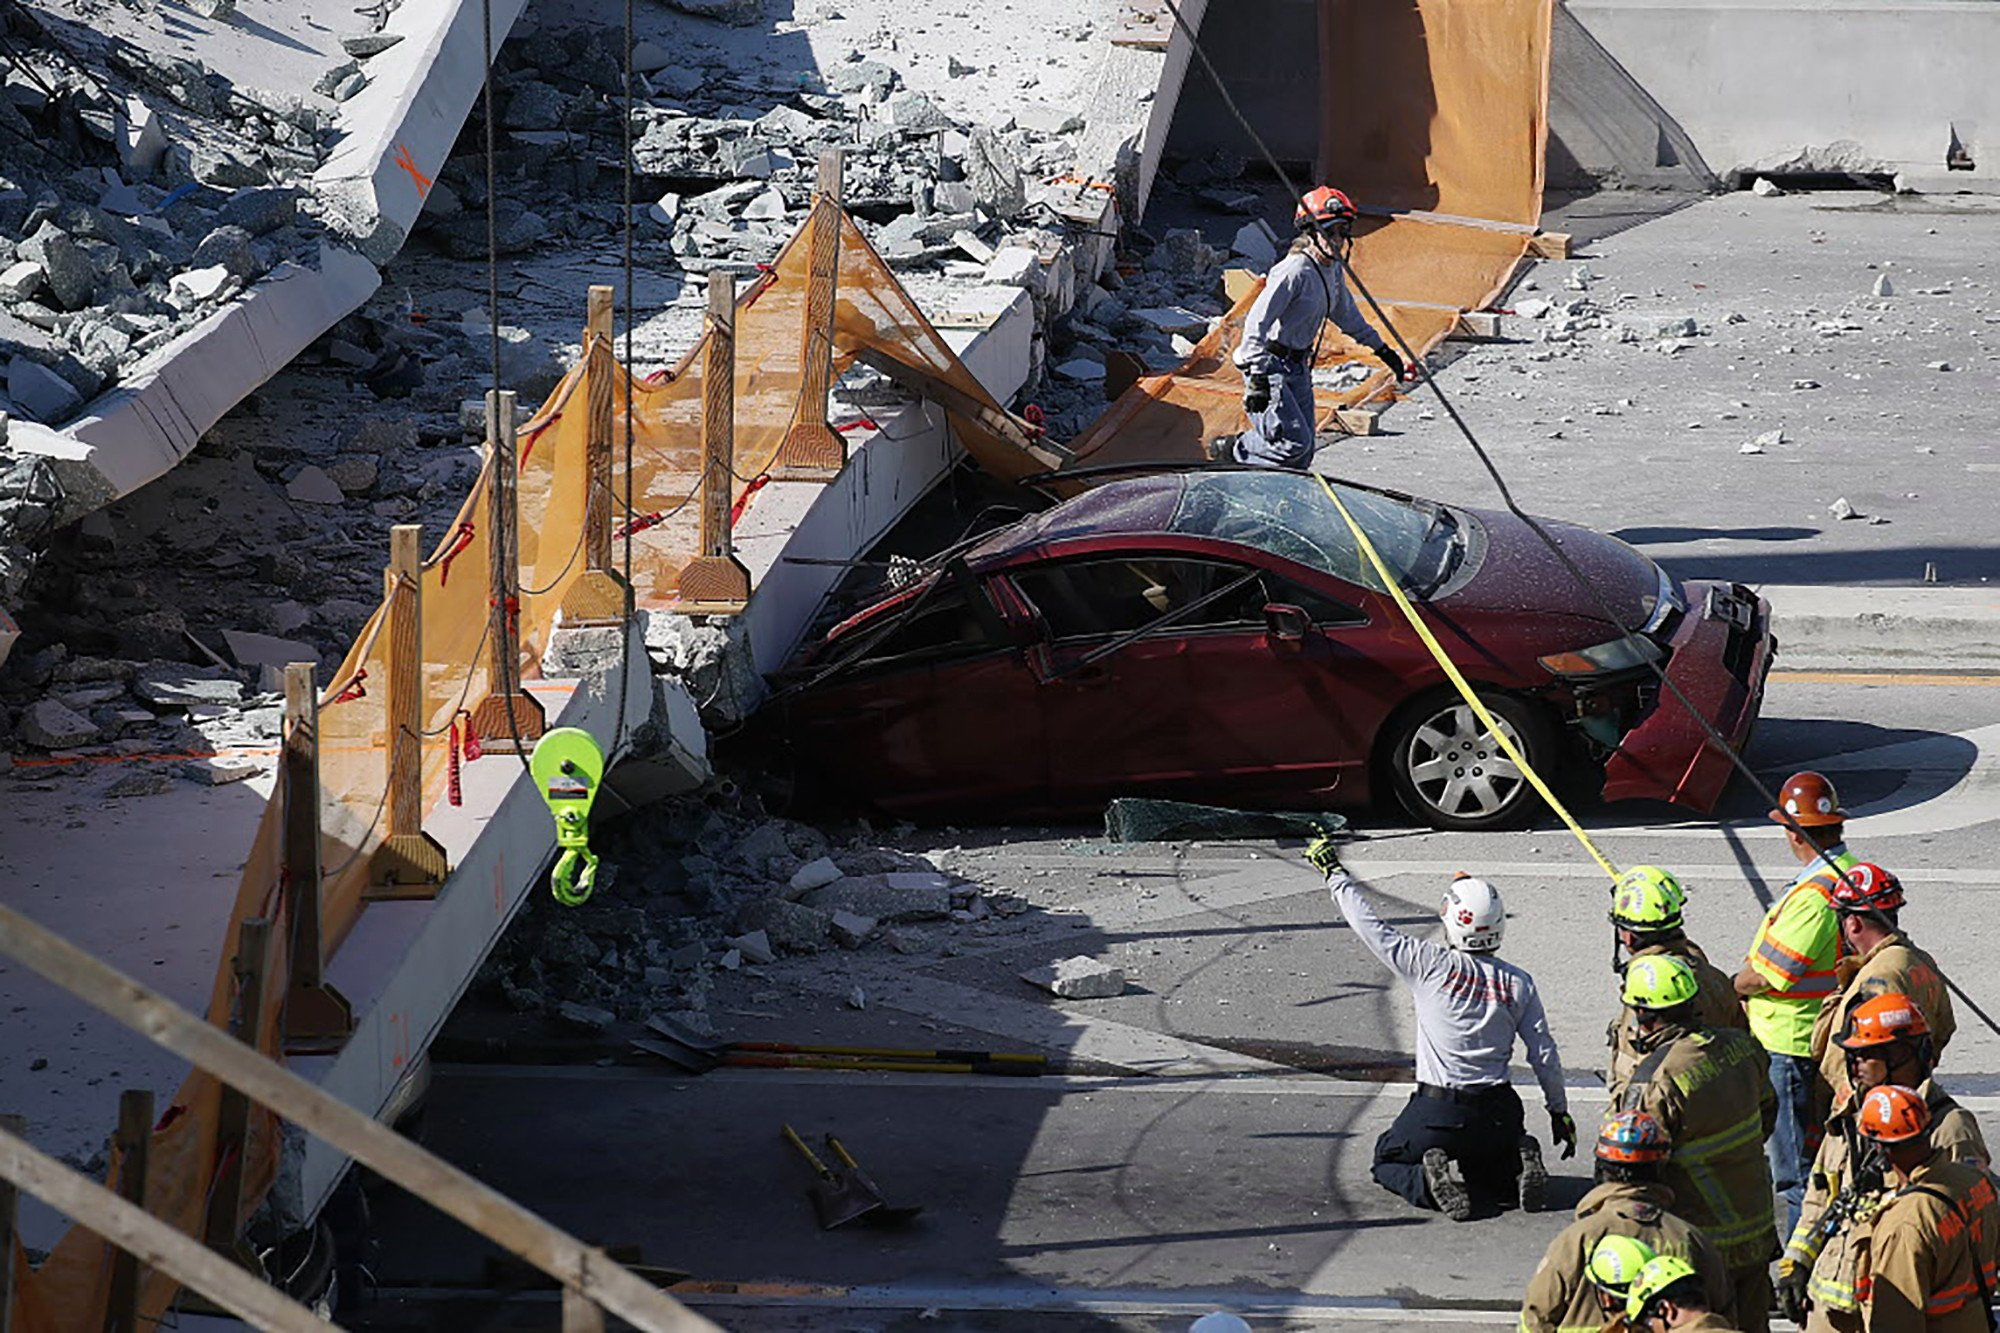 FIU student among those killed in bridge collapse